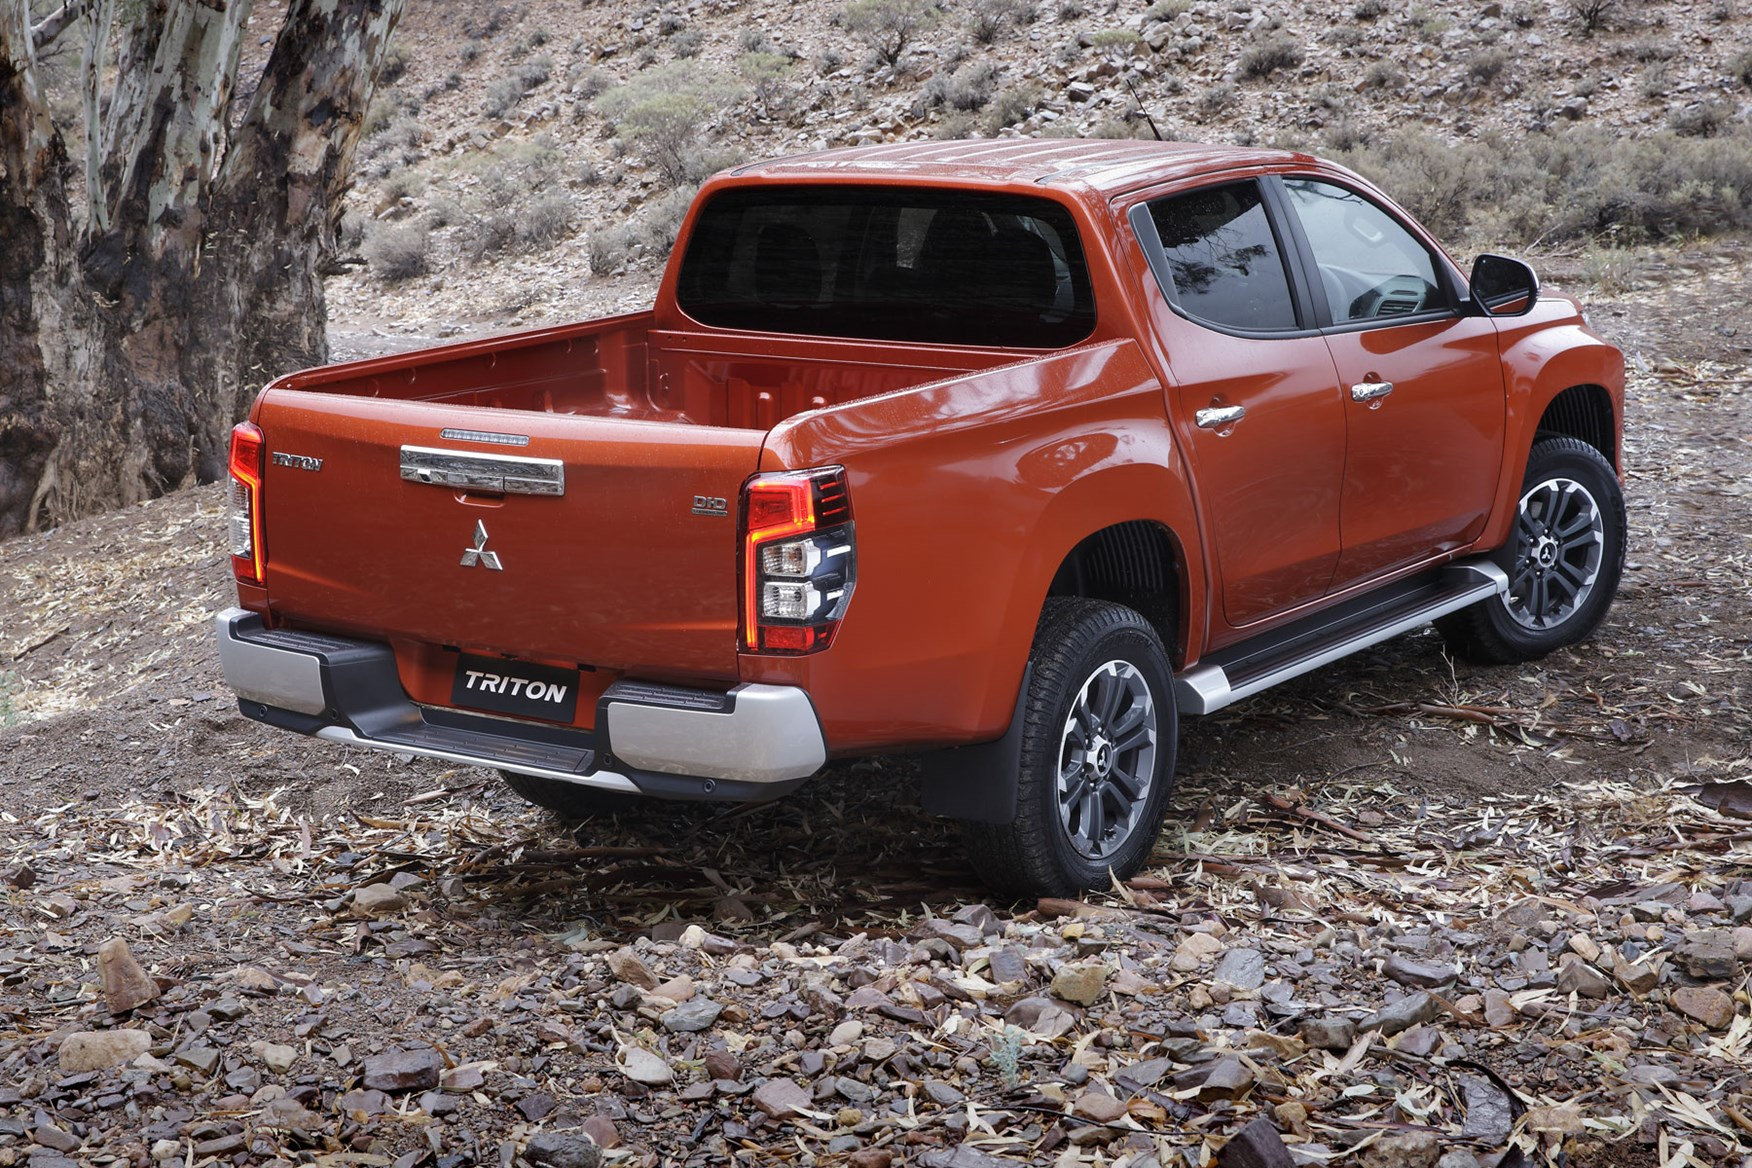 new 2019 mitsubishi l200 pickup truck review first test of facelifted model parkers. Black Bedroom Furniture Sets. Home Design Ideas